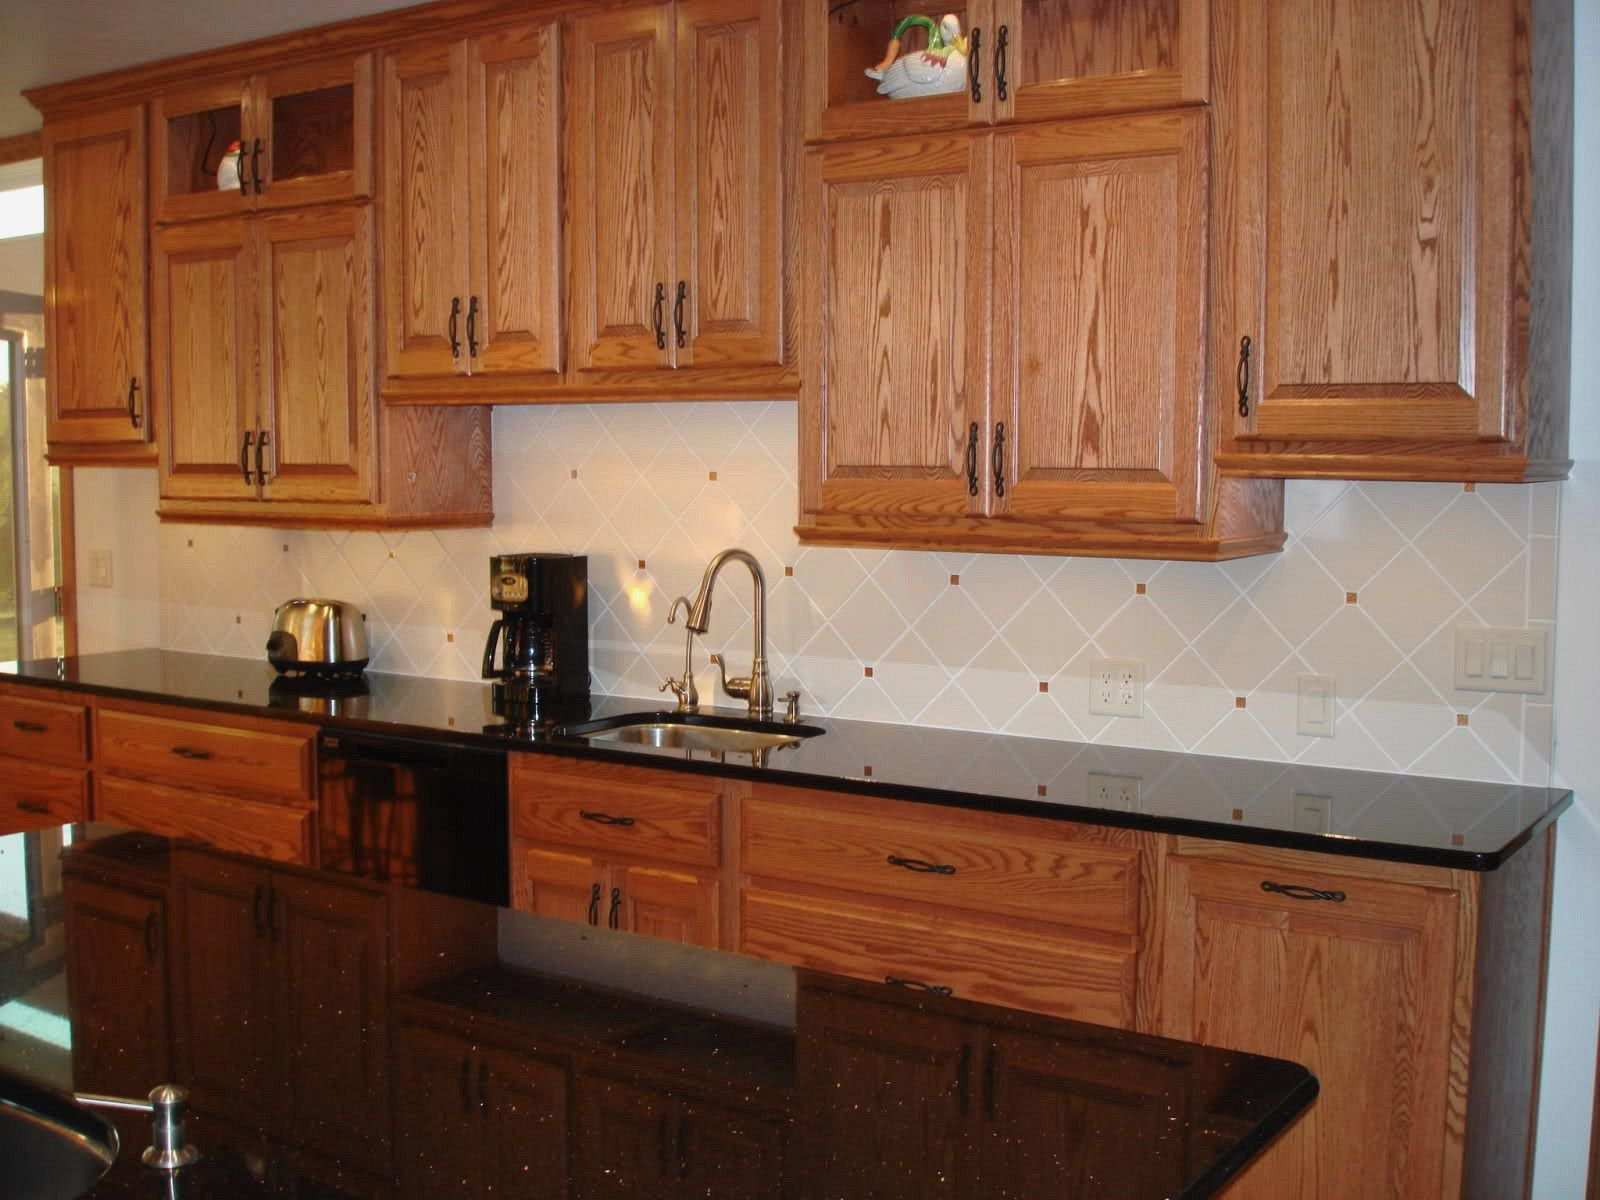 2018 where Can I Donate Kitchen Cabinets - Kitchen Nook Lighting ...